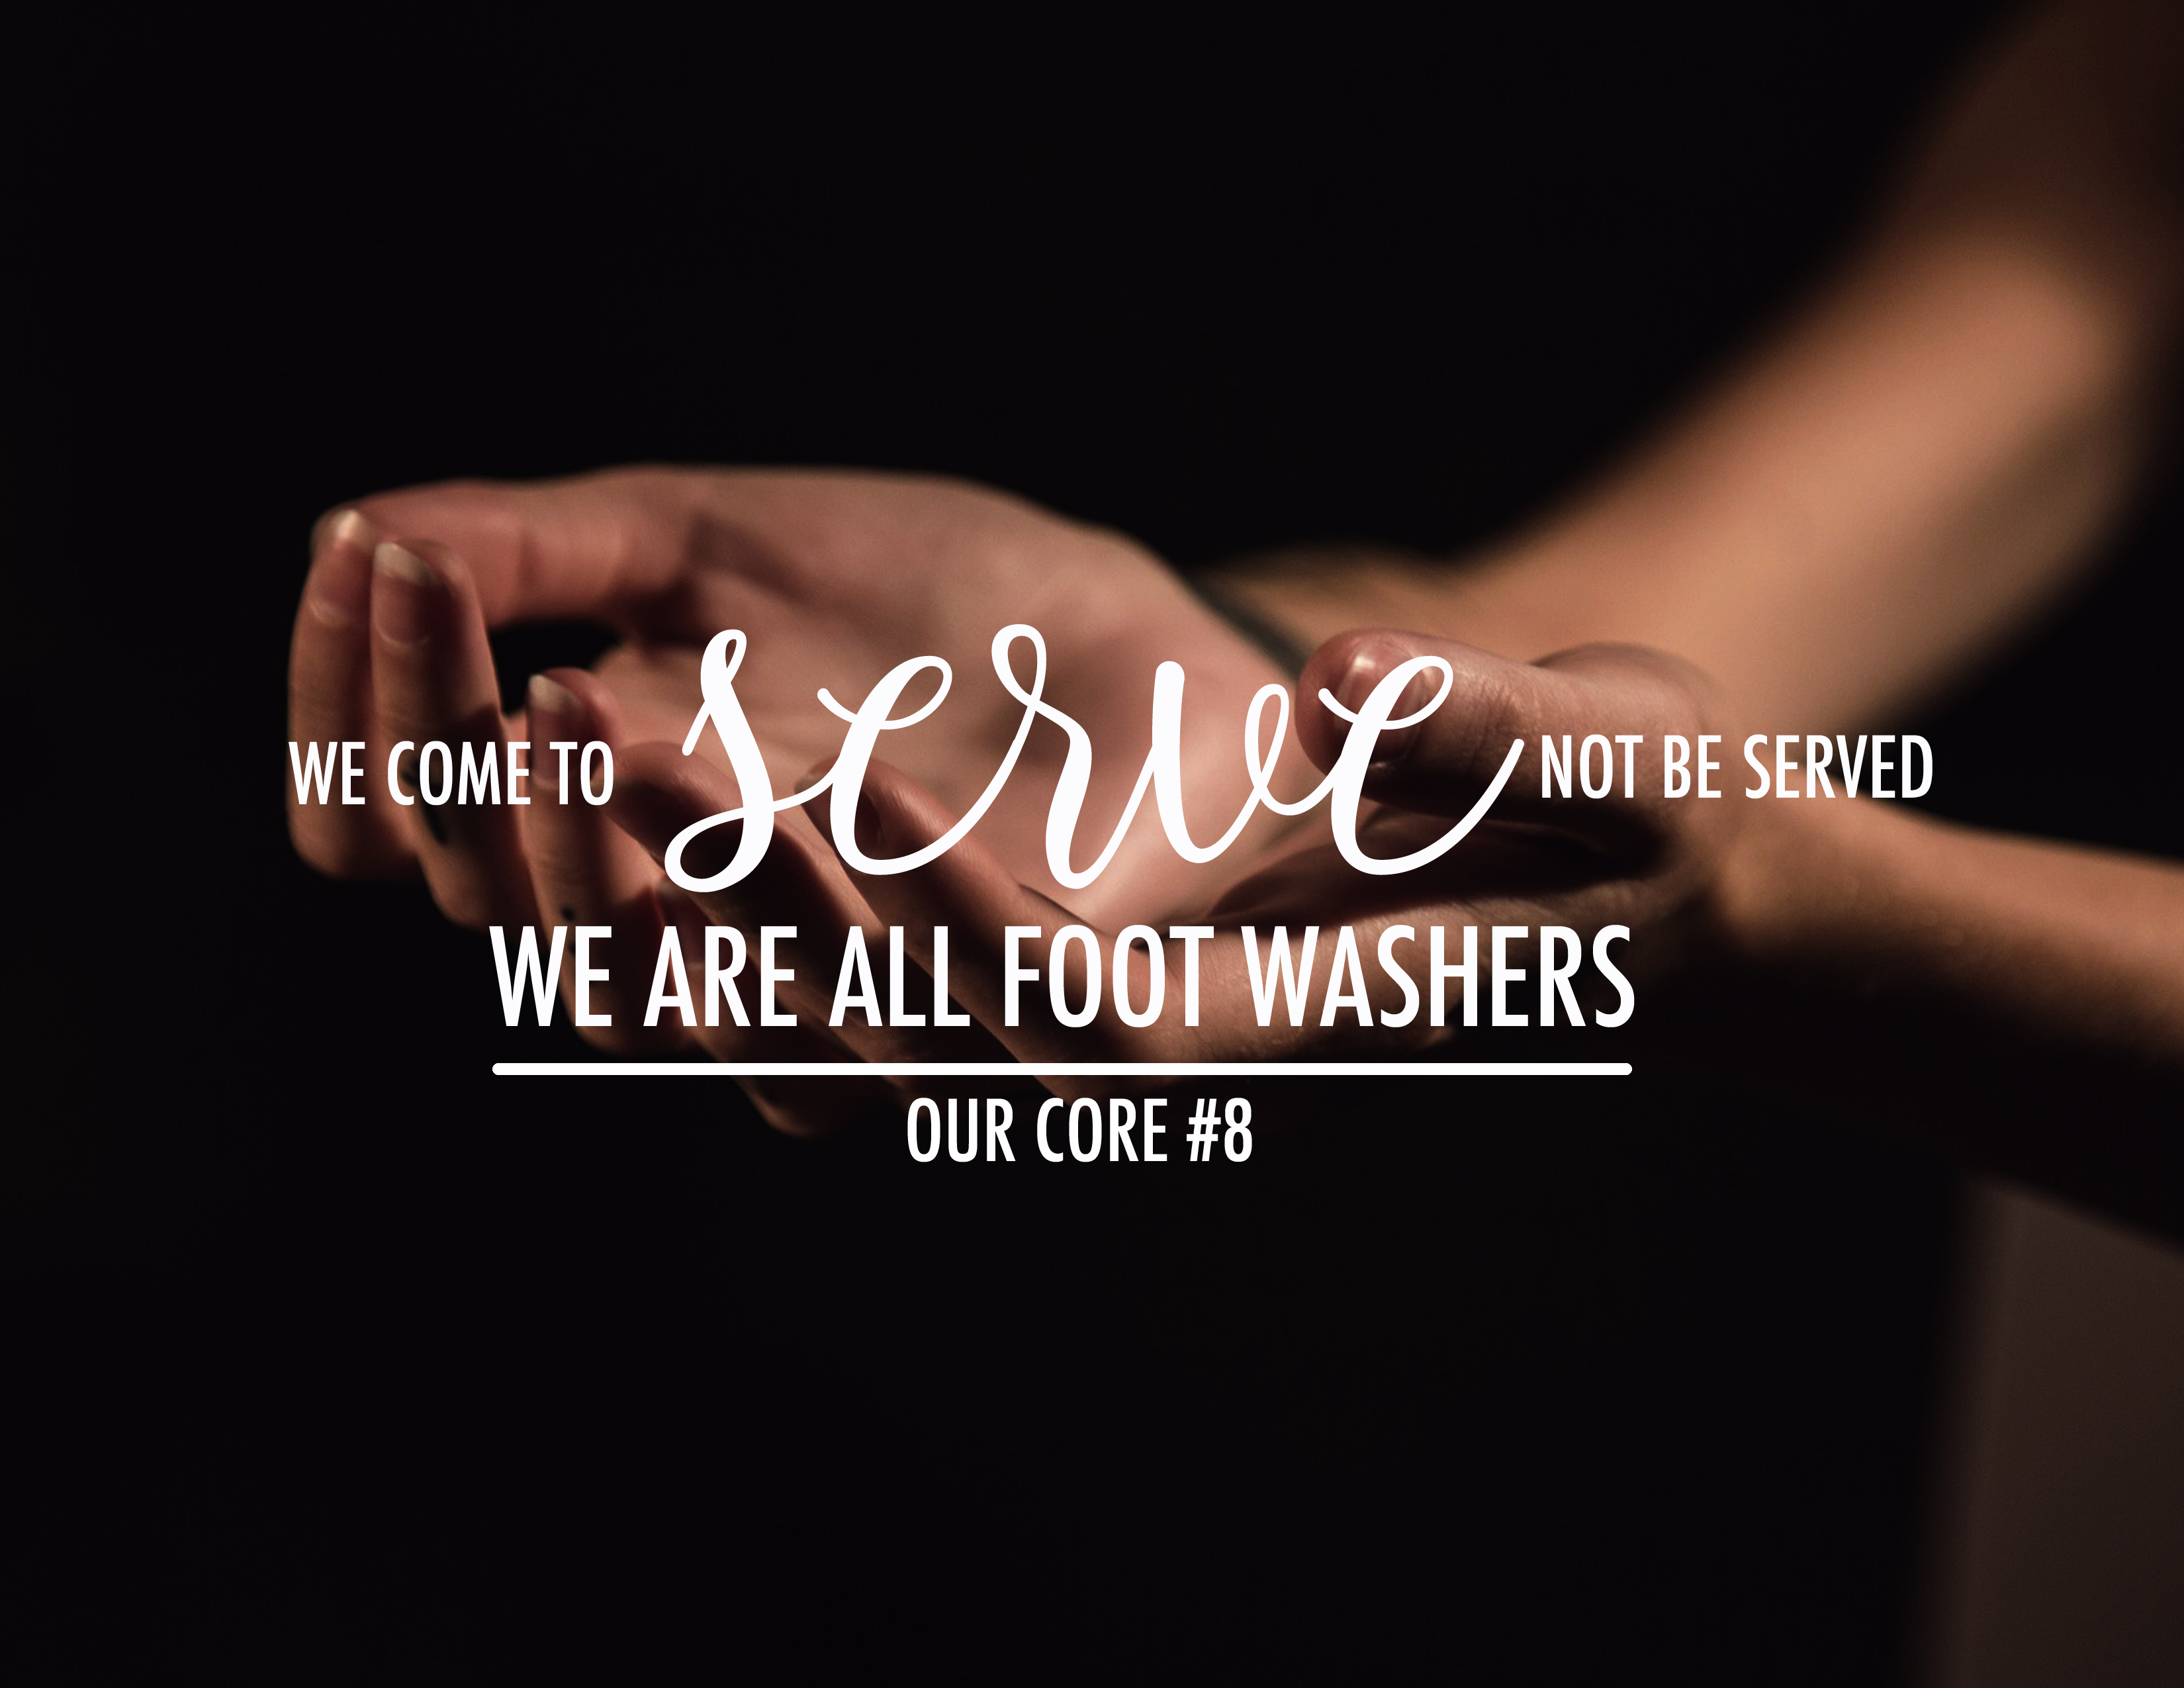 We come to serve and not be served – we are all foot washers